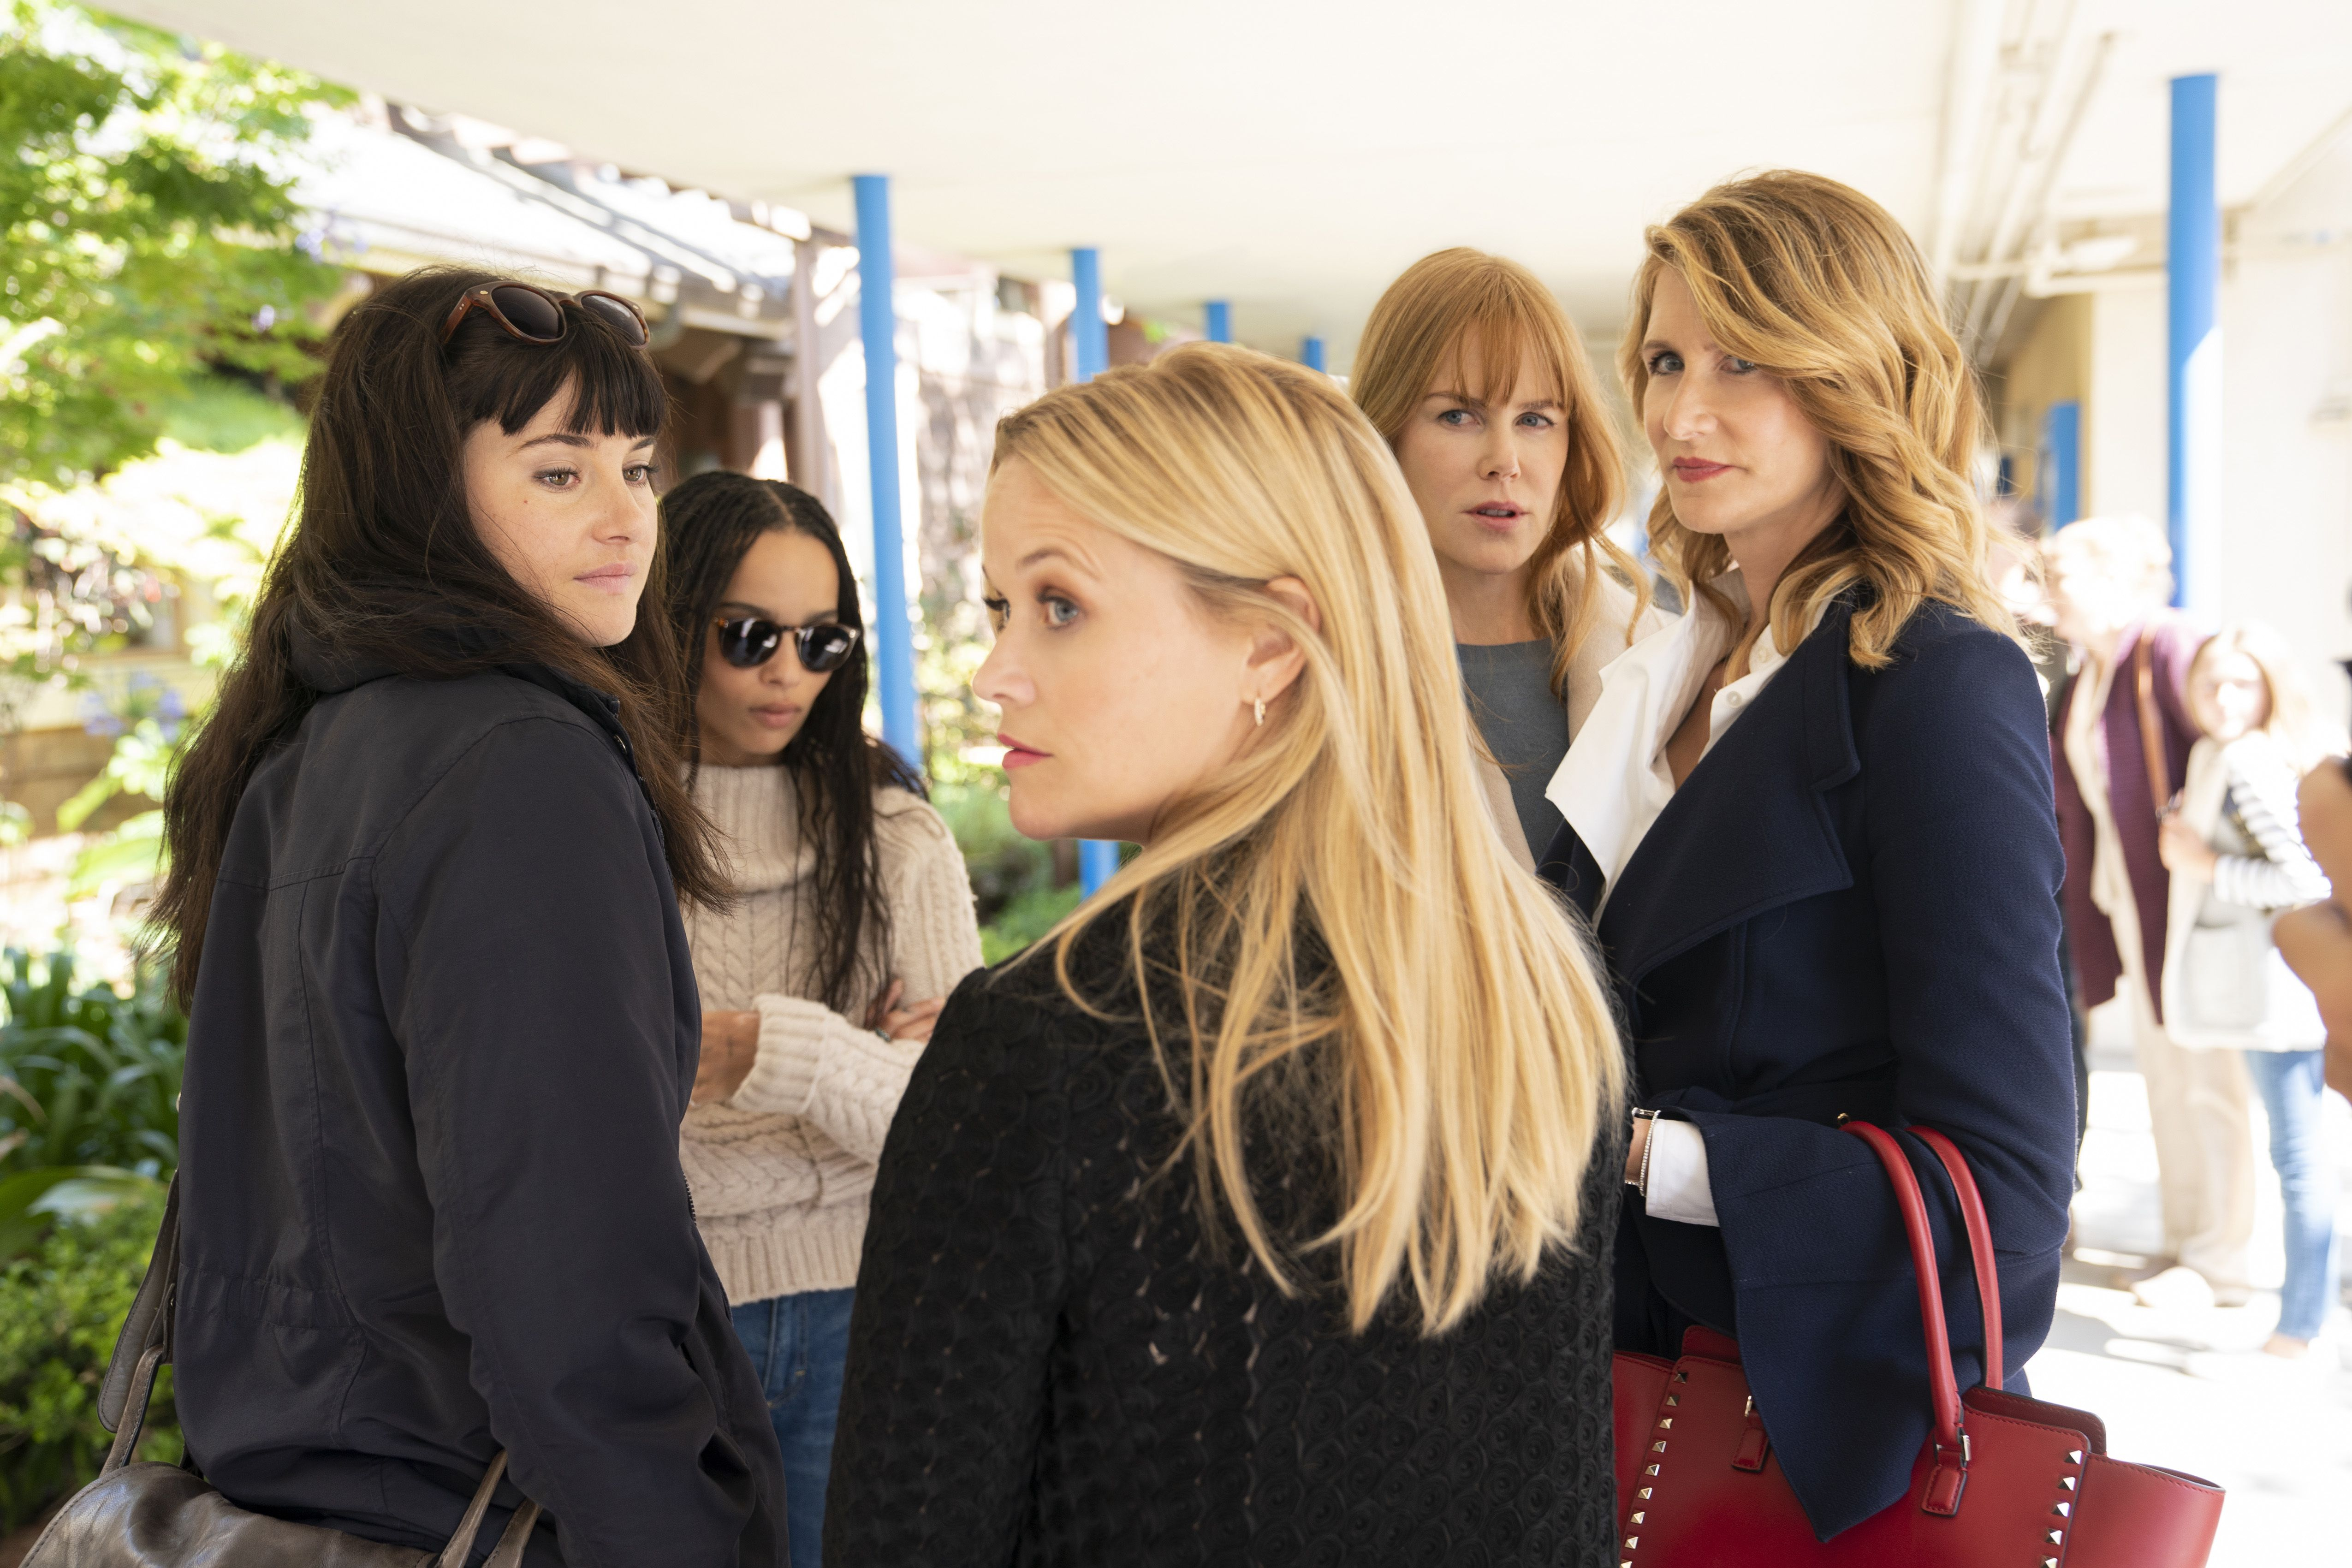 So, What's the Deal With 'Big Little Lies' Season 3?